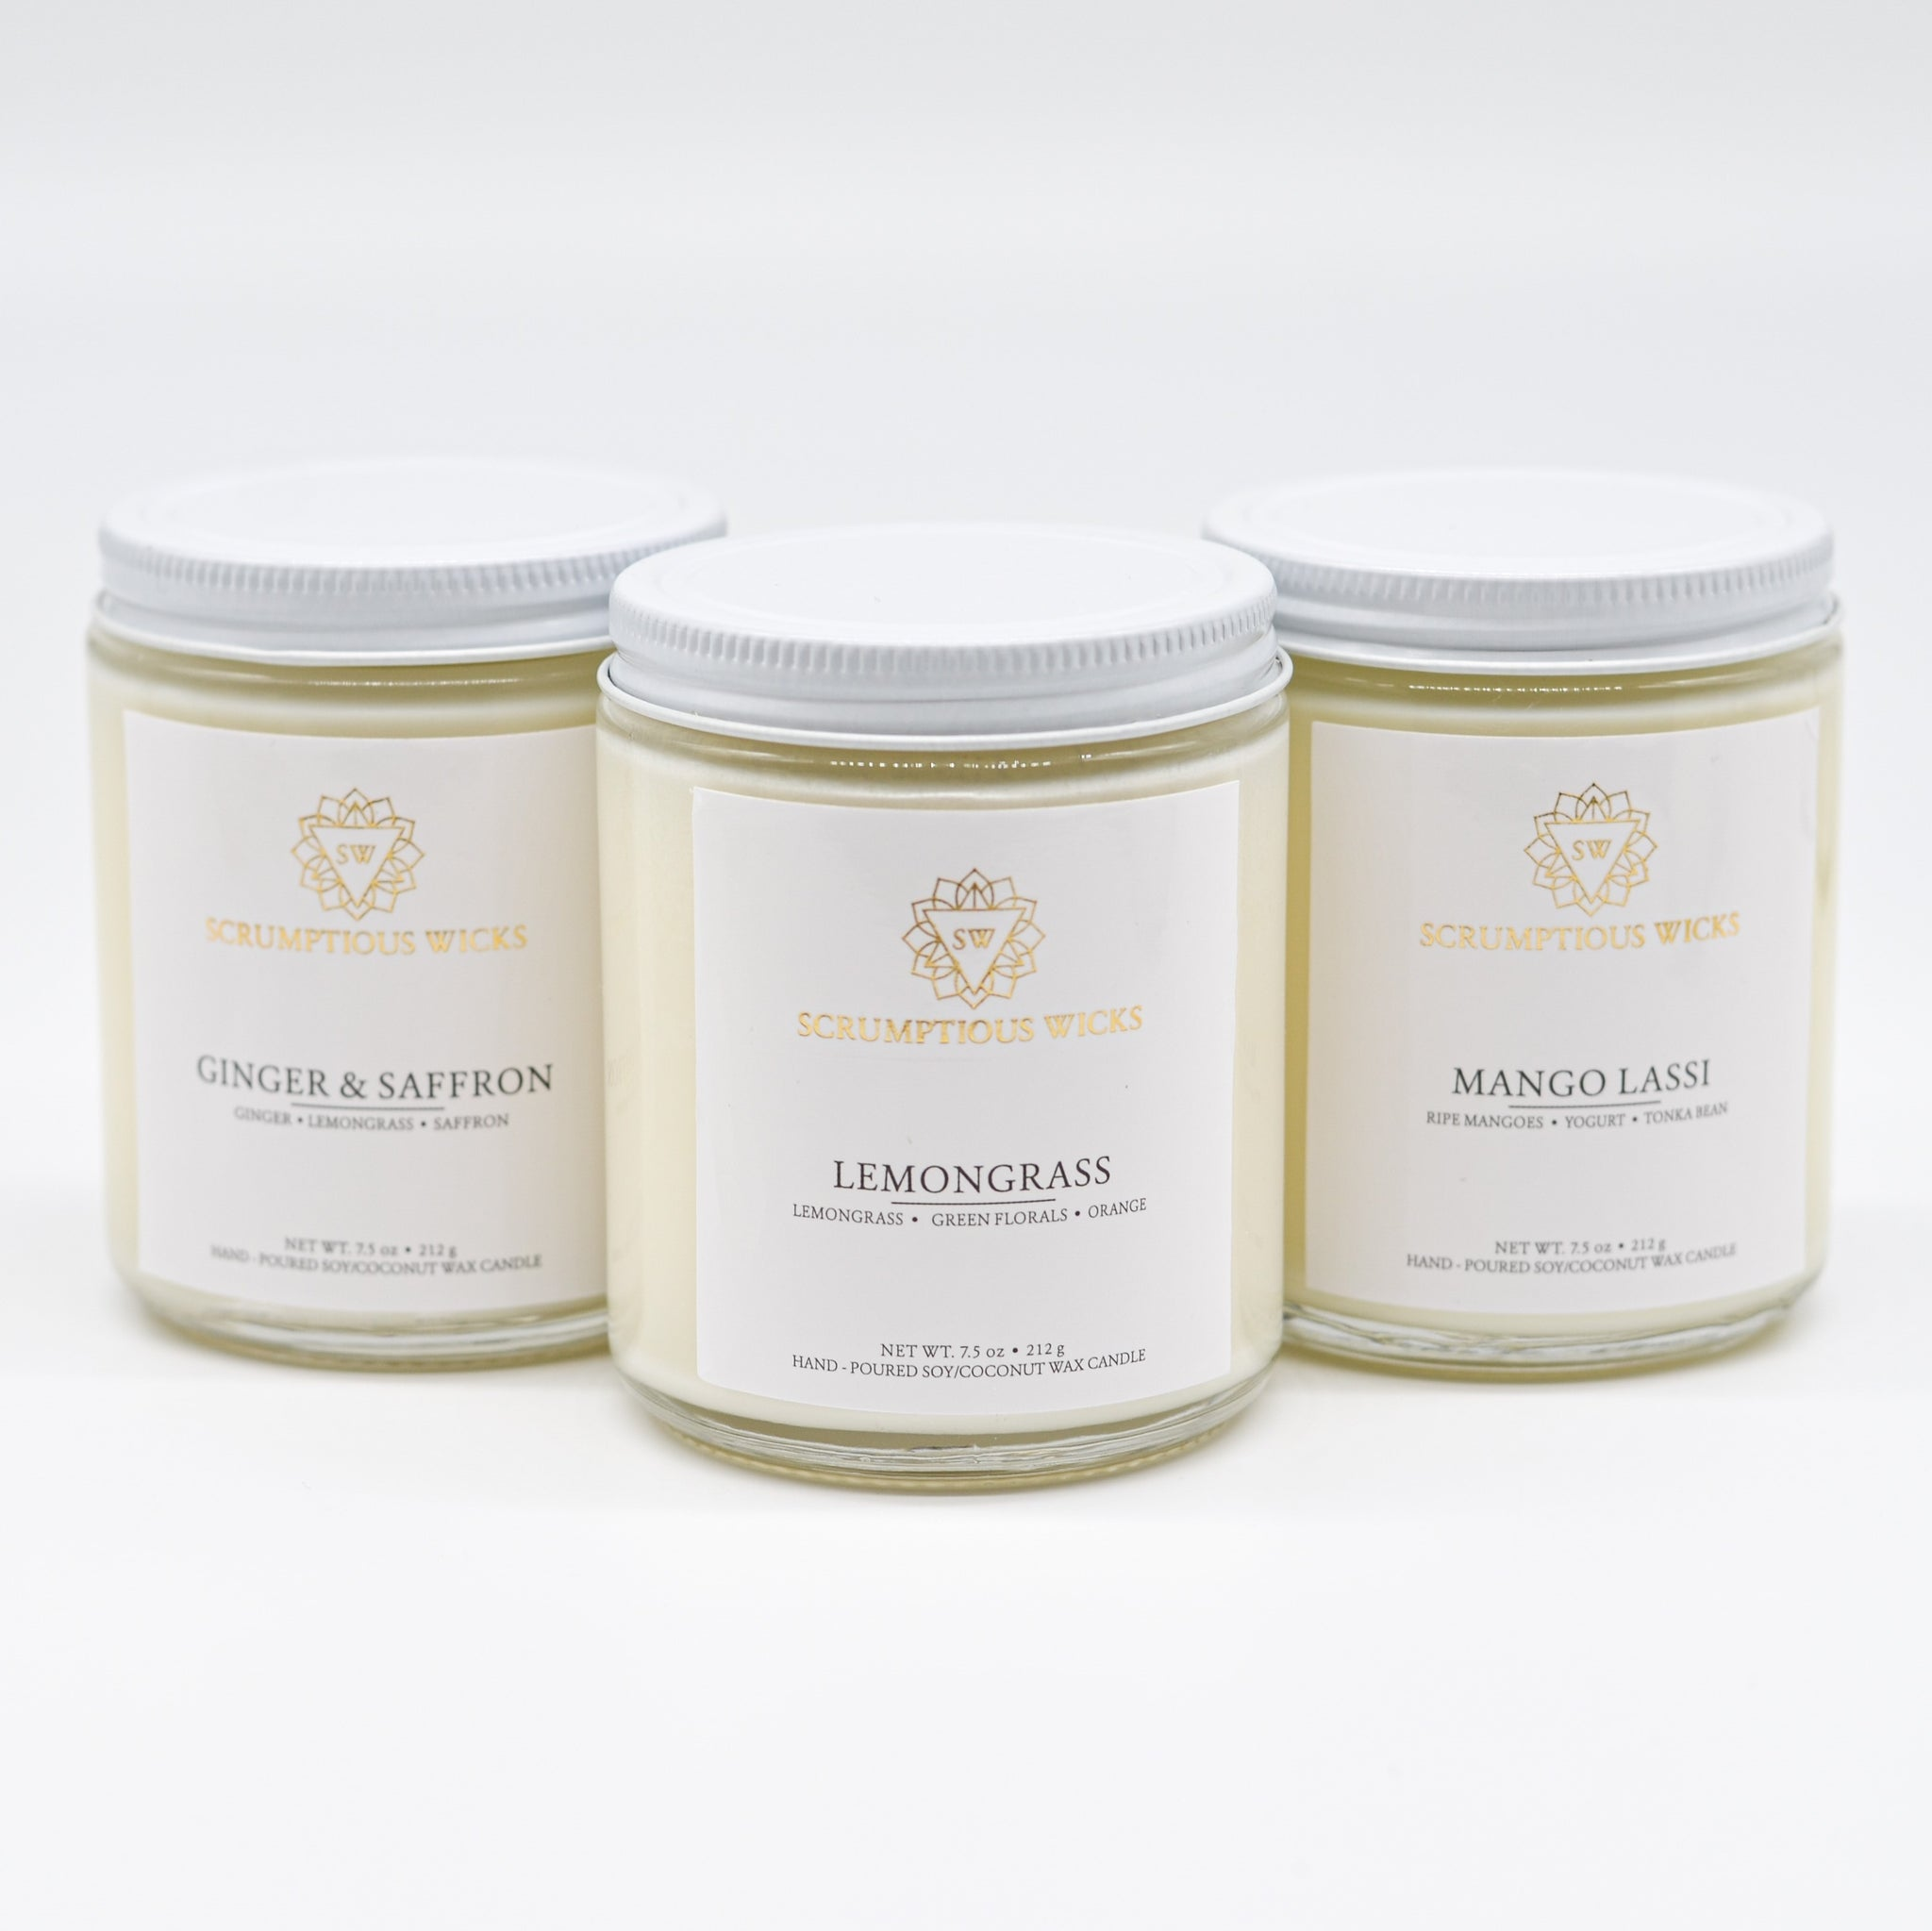 Kitchen Candle Bundle: Ginger & Saffron, Lemongrass, and Mango Lassi